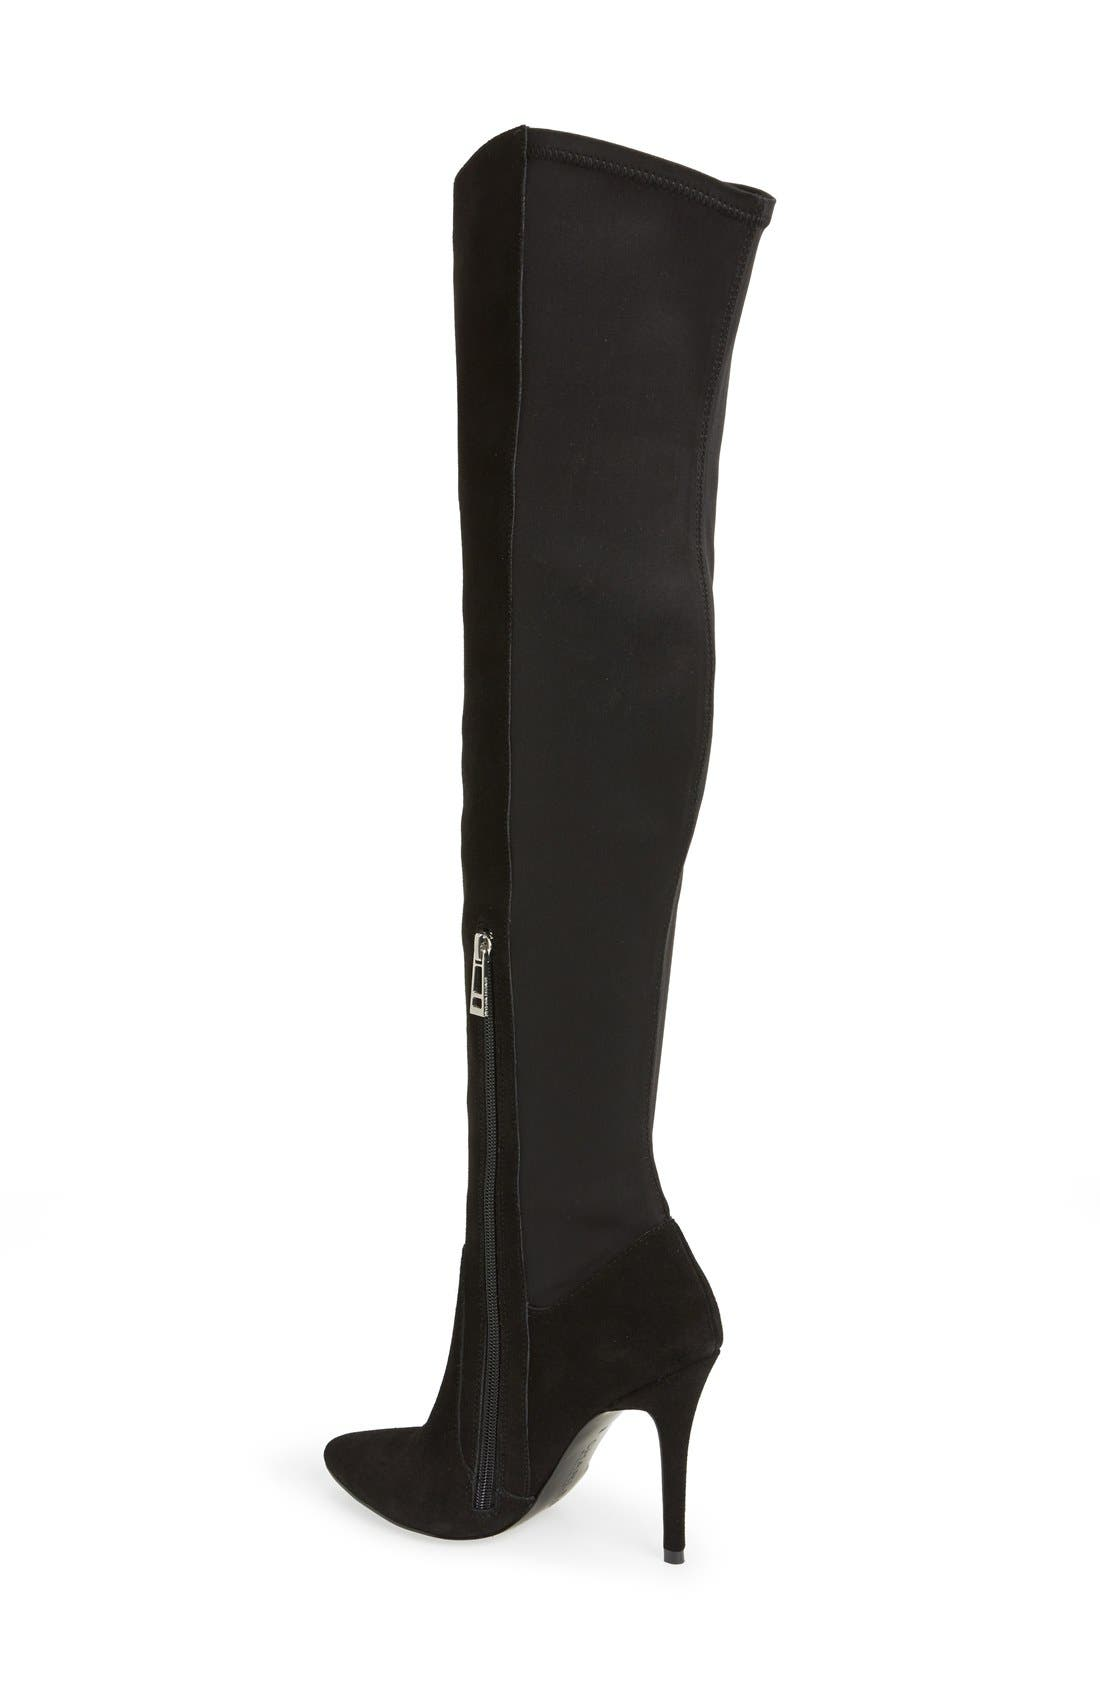 CHARLES BY CHARLES DAVID, 'Paso' Over The Knee Boot, Alternate thumbnail 4, color, 002